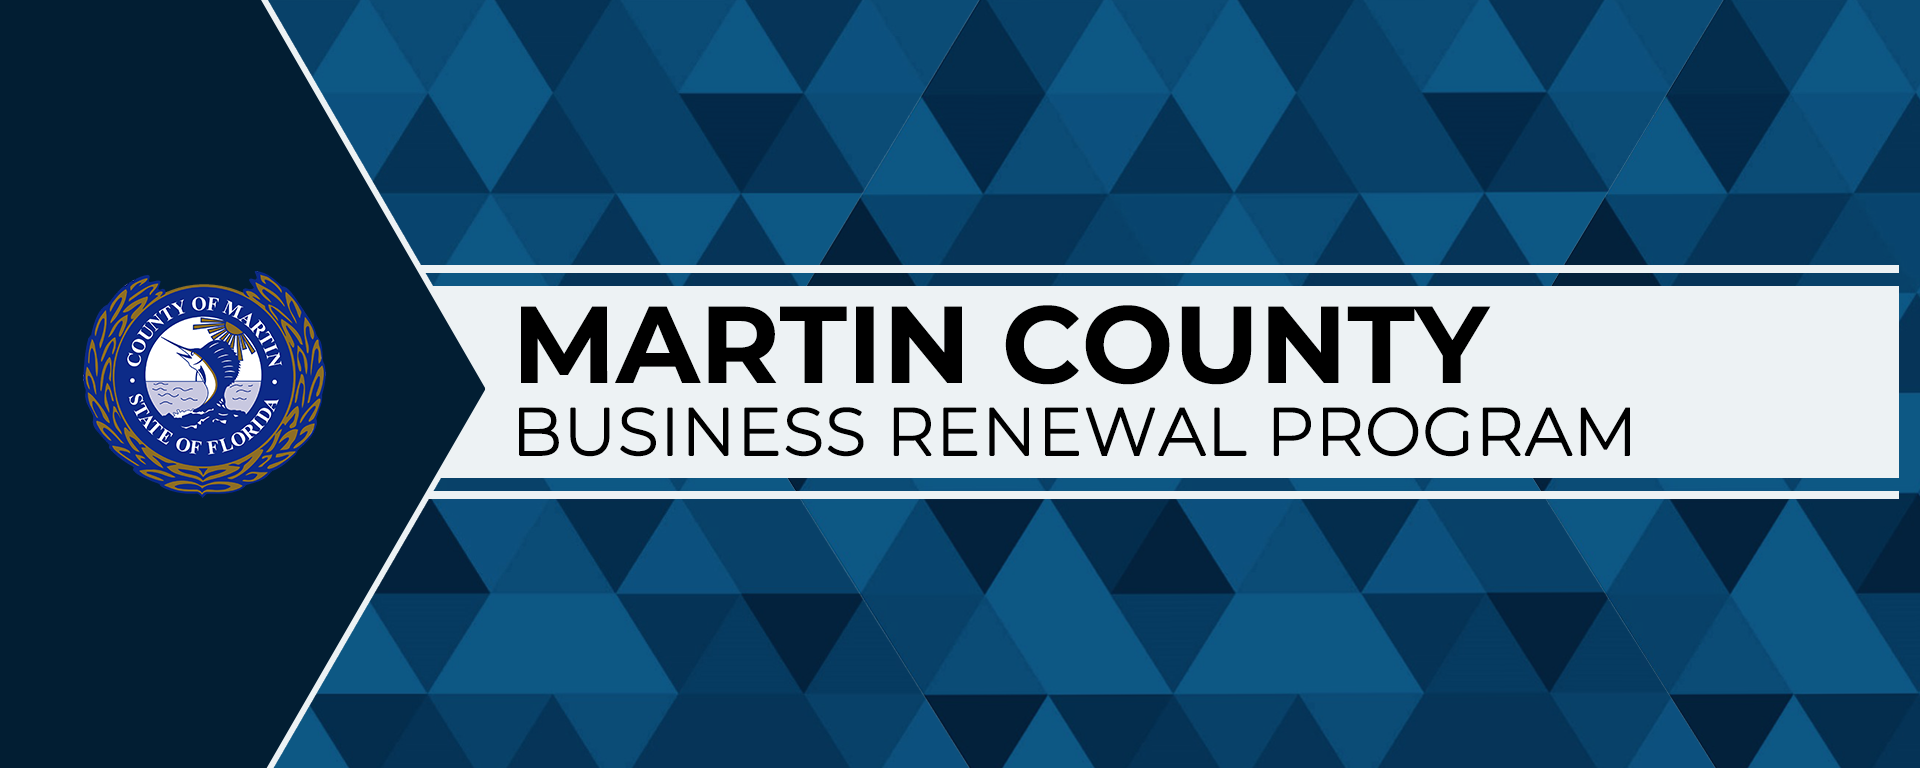 Martin County Business Renewal Program with county seal